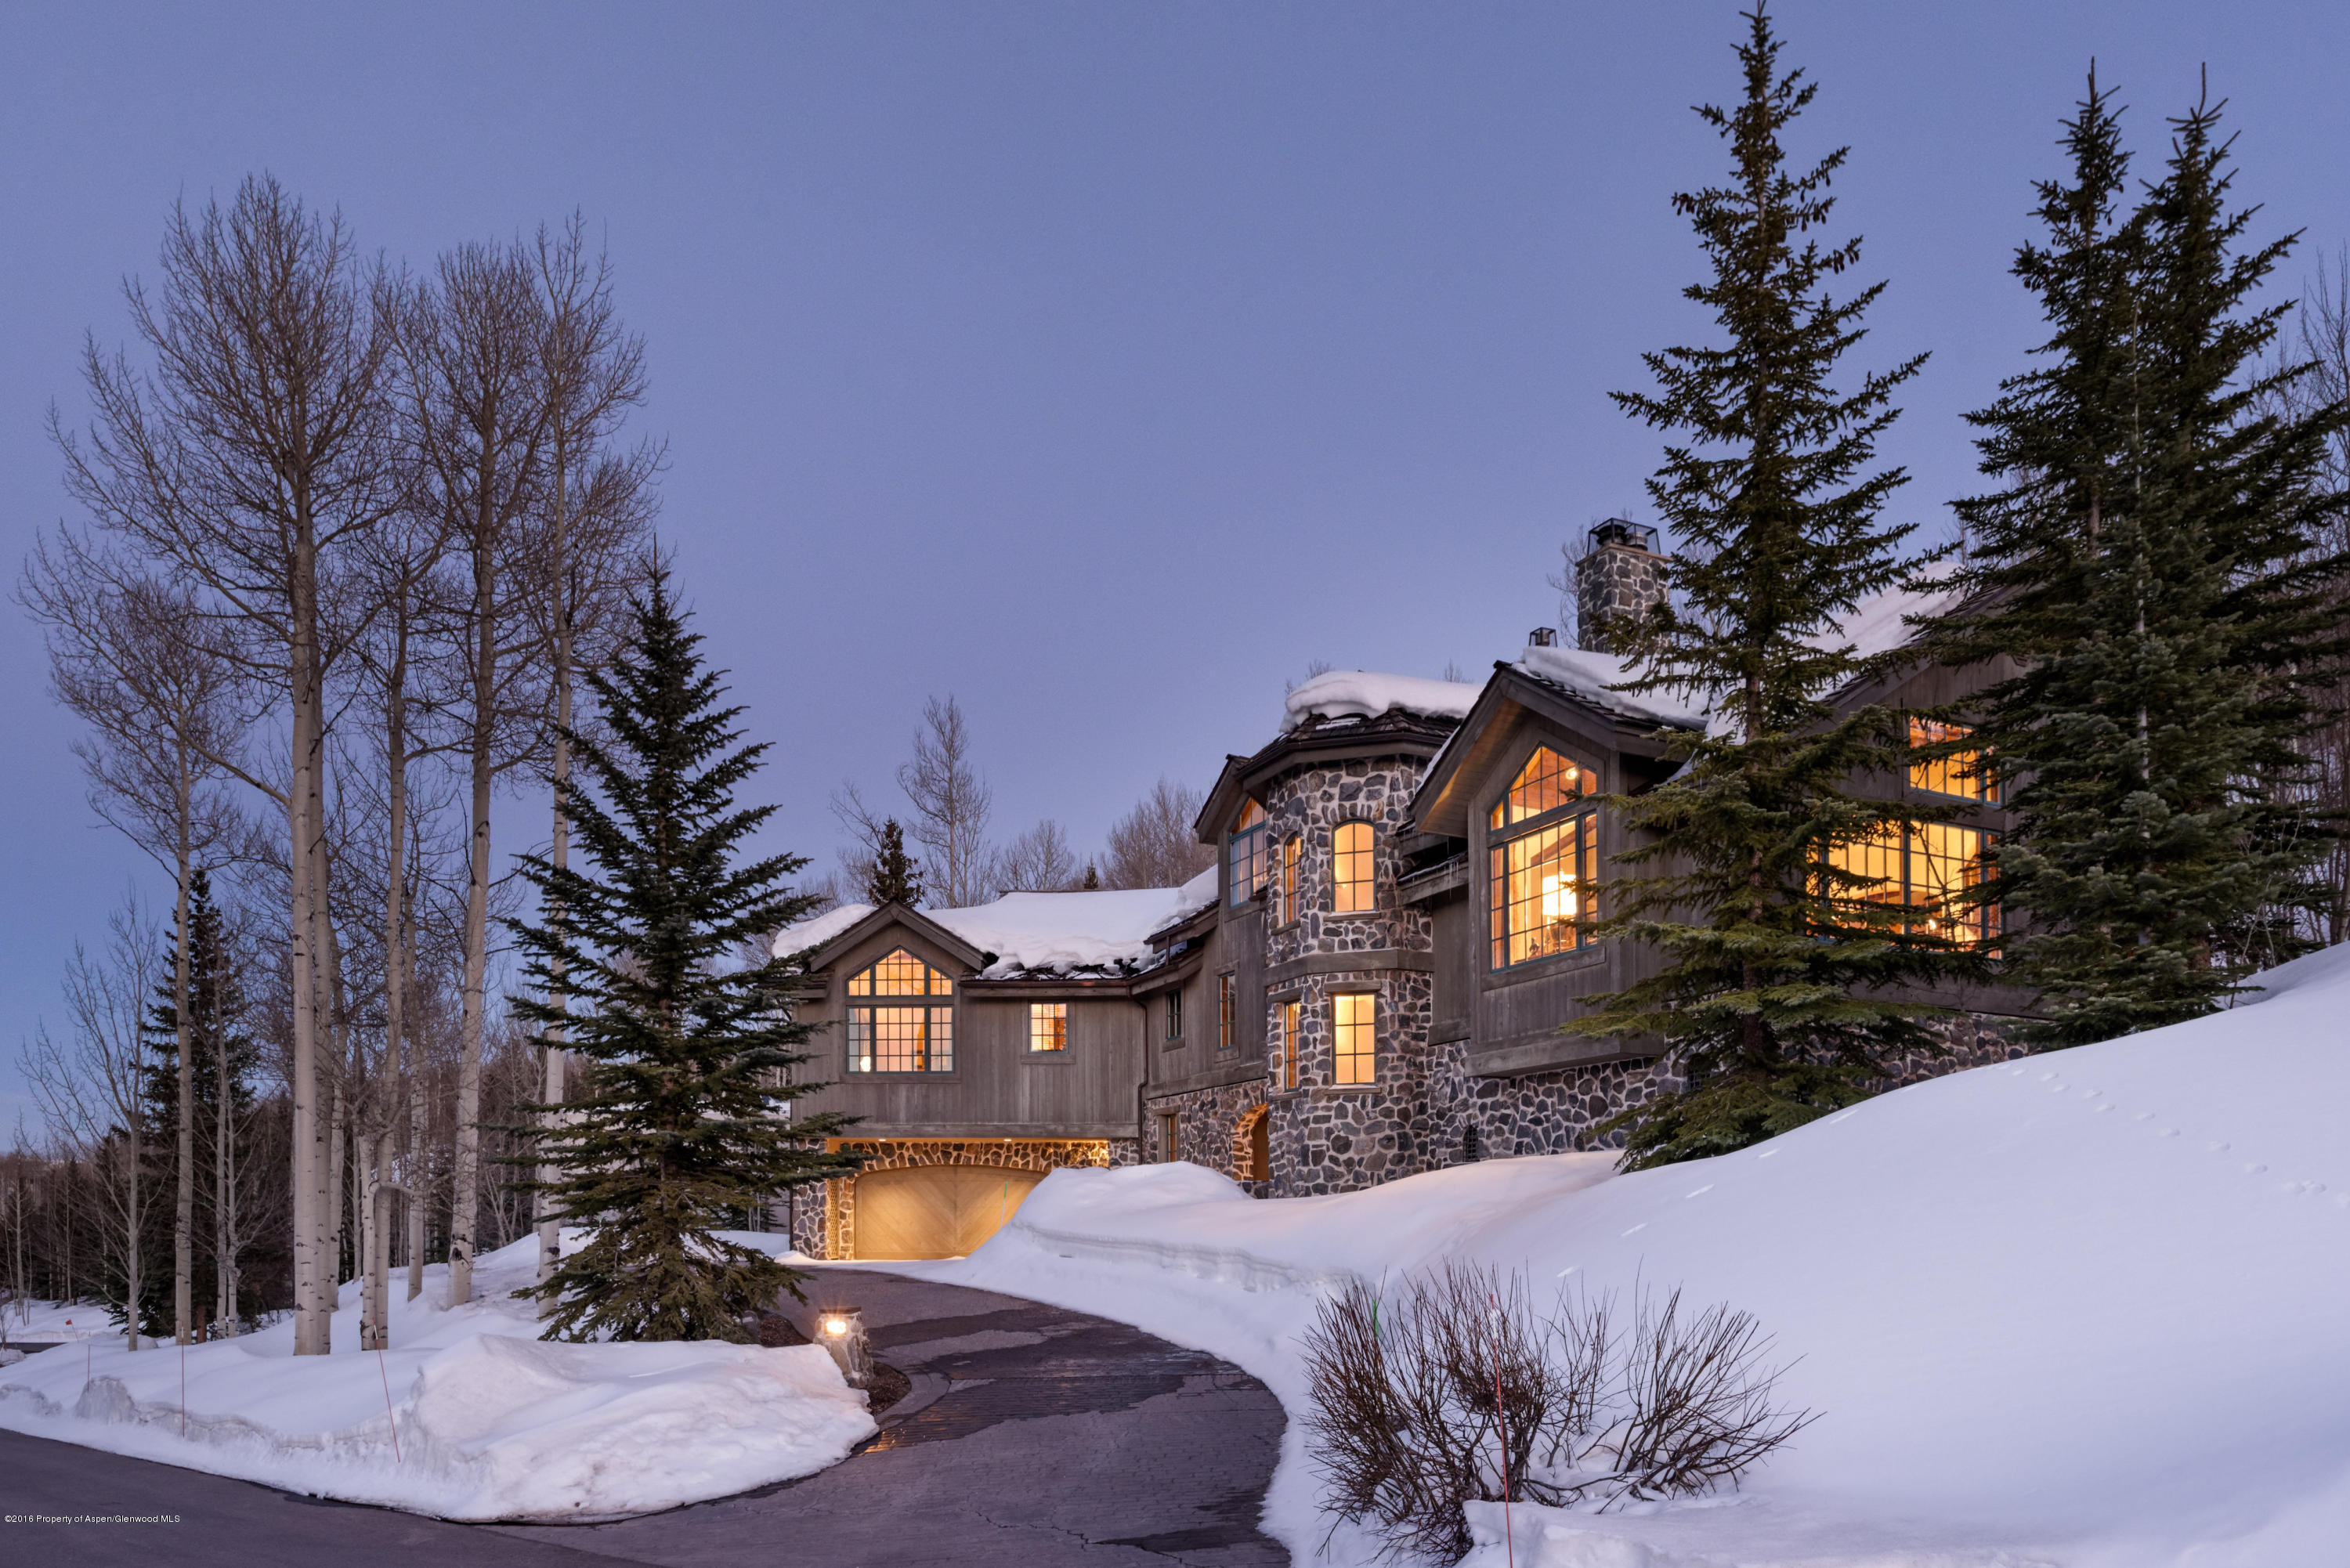 143 Aspen Way - Snowmass Village, Colorado